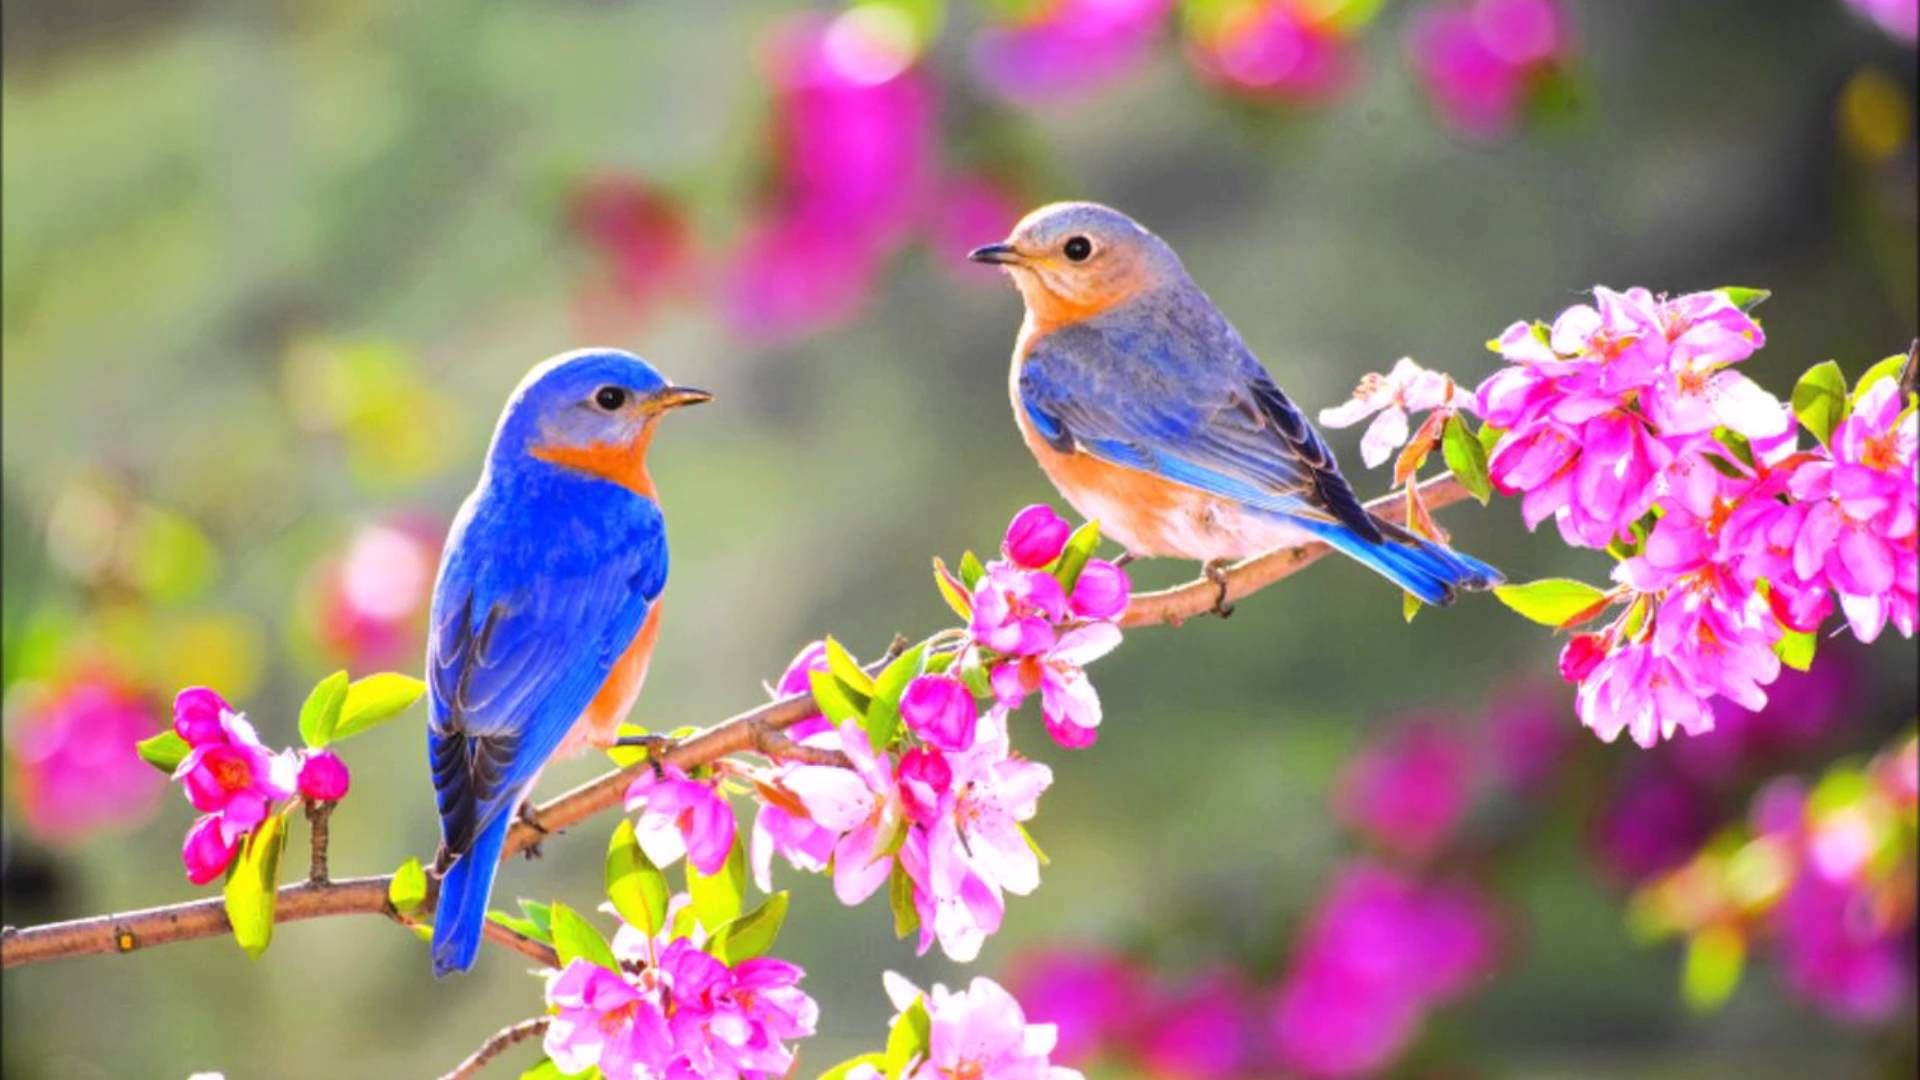 Pin By Soulcare On Soulcare Retreats Pinterest Birds Beautiful